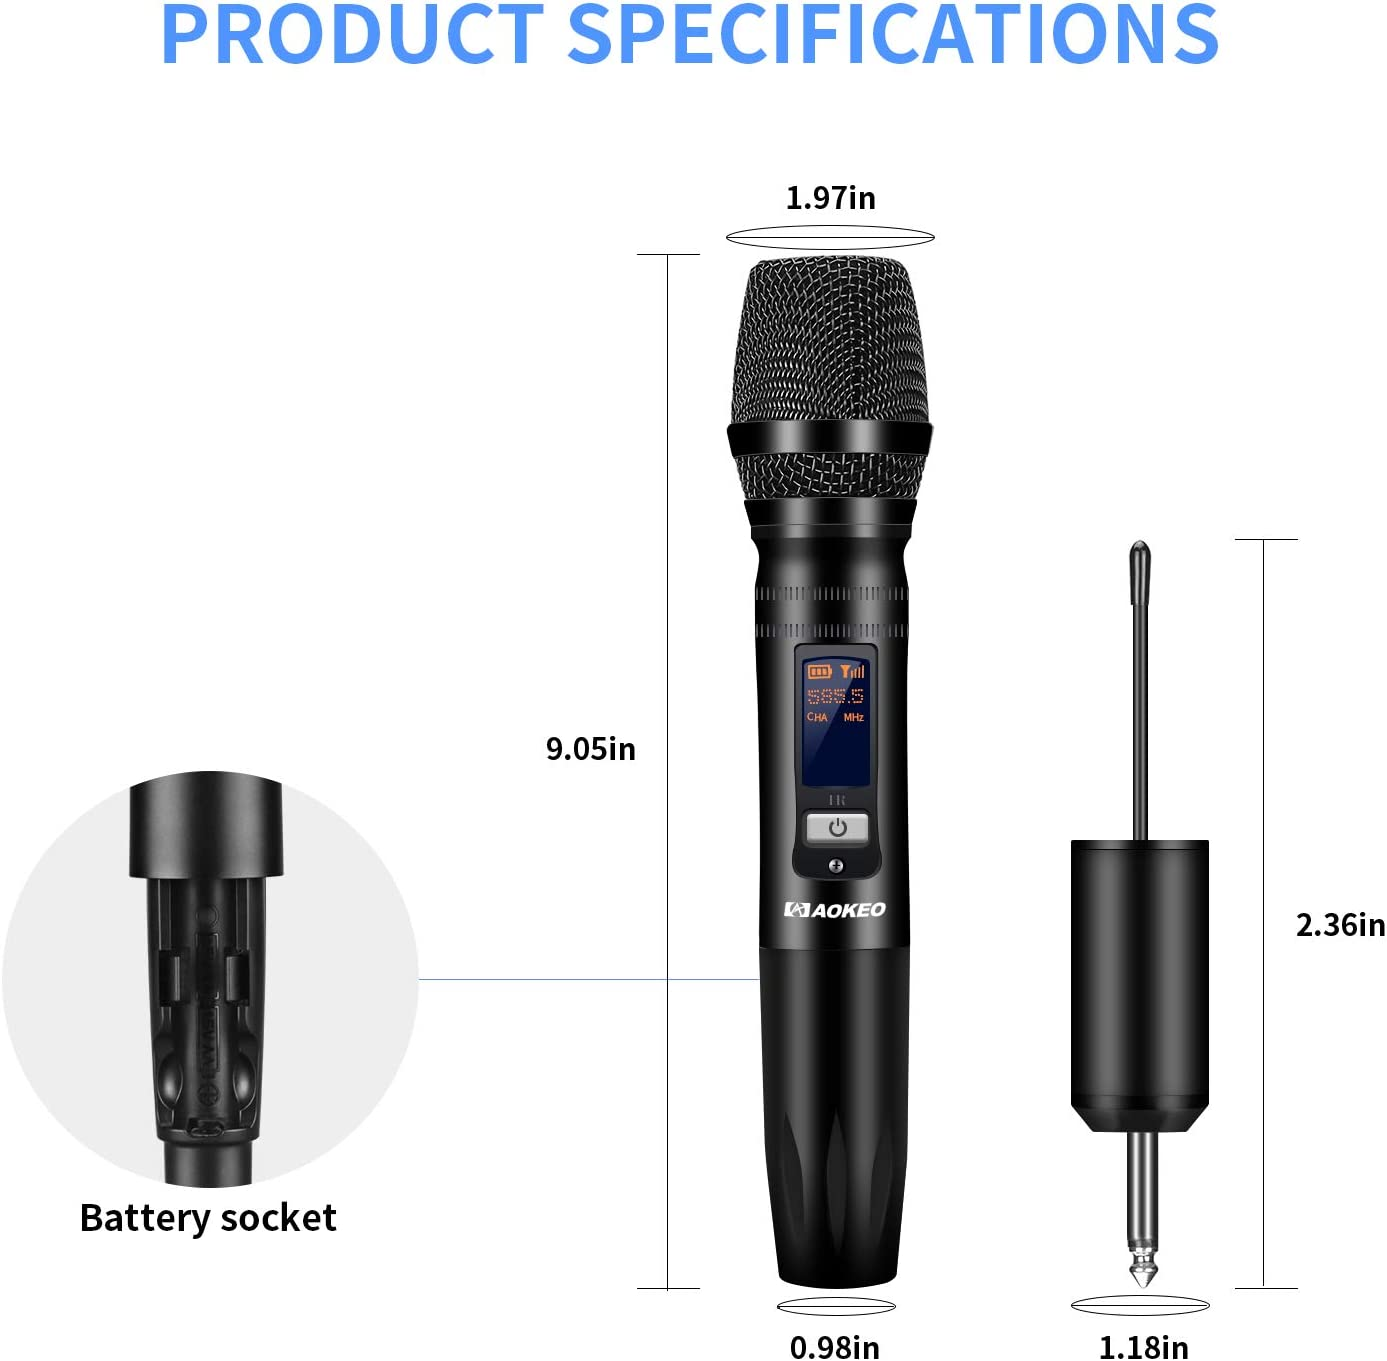 DJ On Stage Karaoke 30ft Conference 1//4 inch Plug Receiver for Computer Live Events Aokeo Wireless Handheld Microphone 18K mA Battery UHF Dynamic Mic System Wedding Church